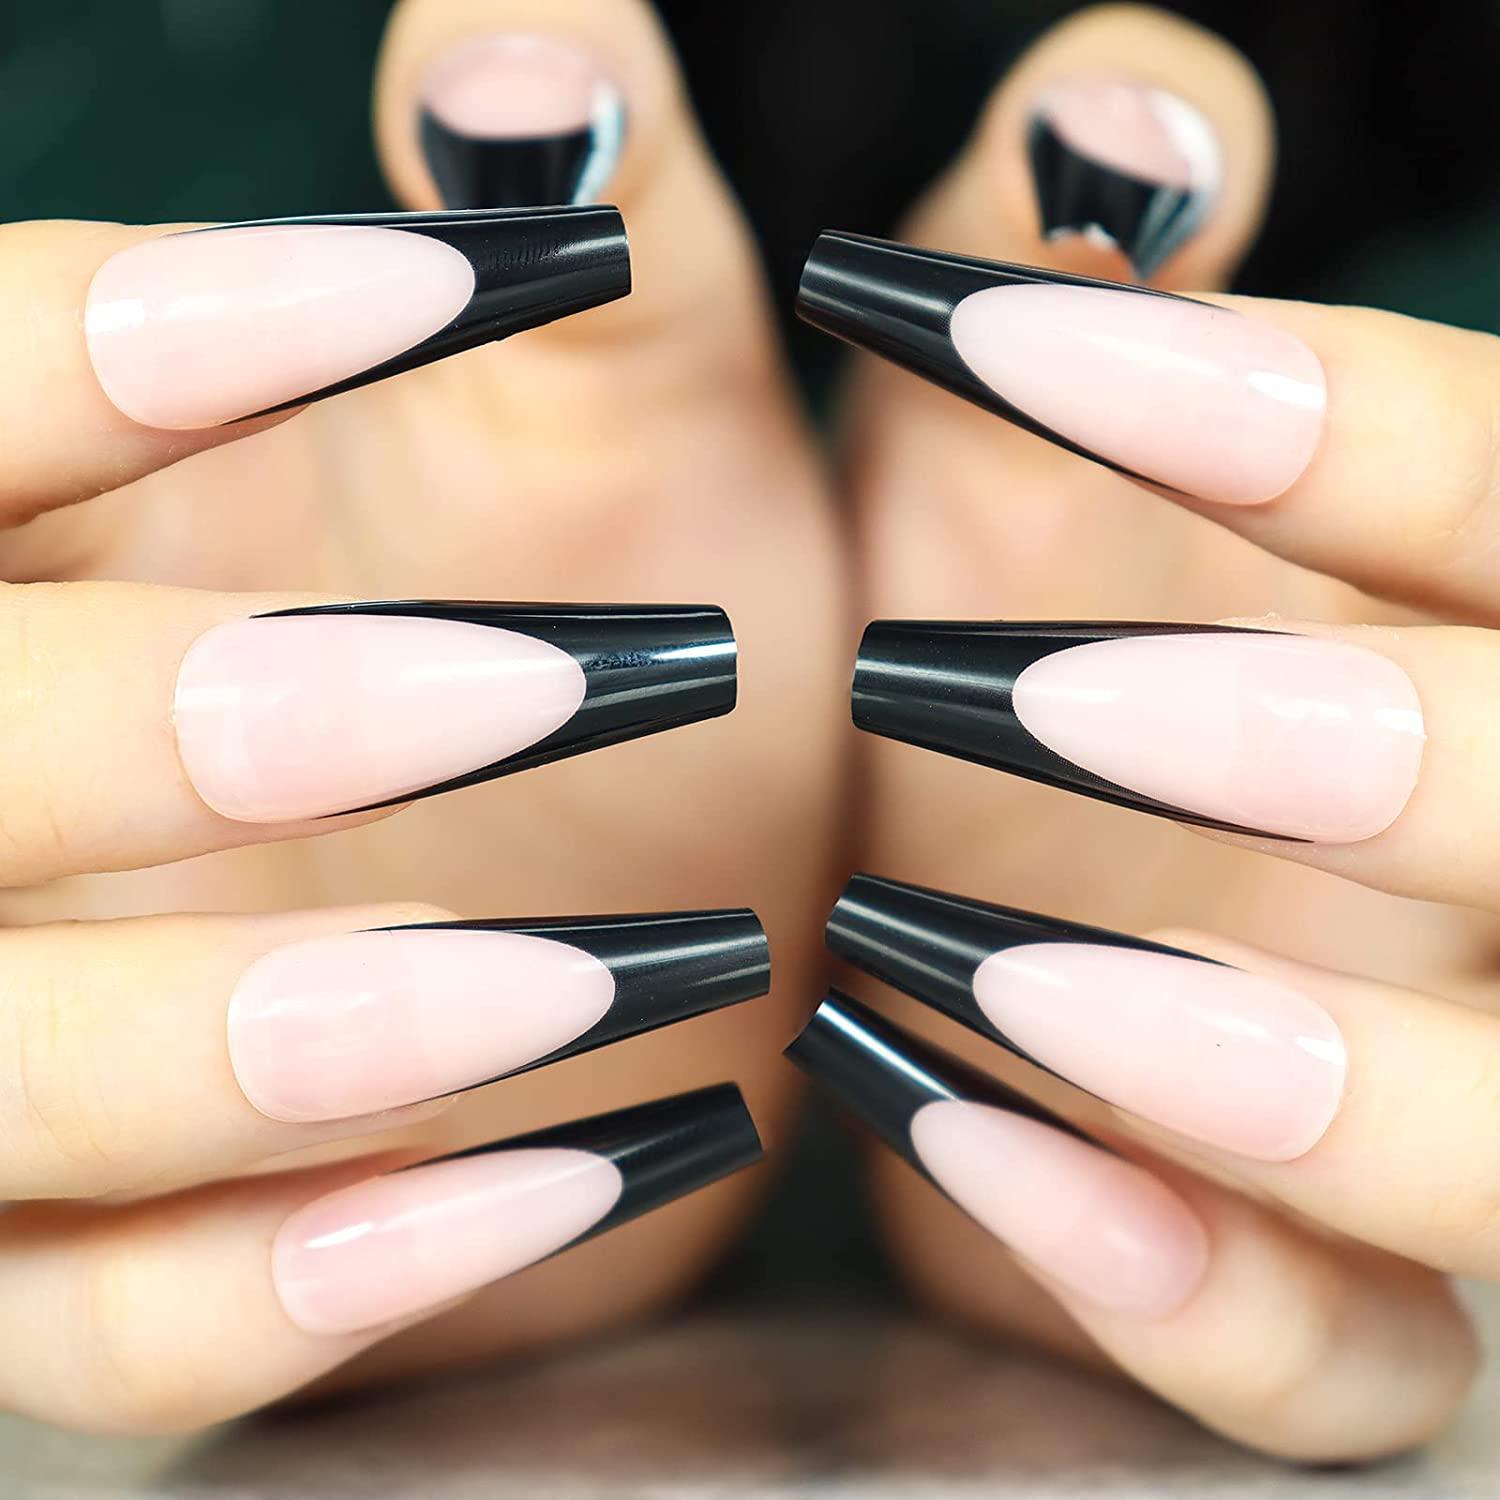 Long French Press on New color Nails Glossy Full Nude Co 55% OFF Coffin Fake